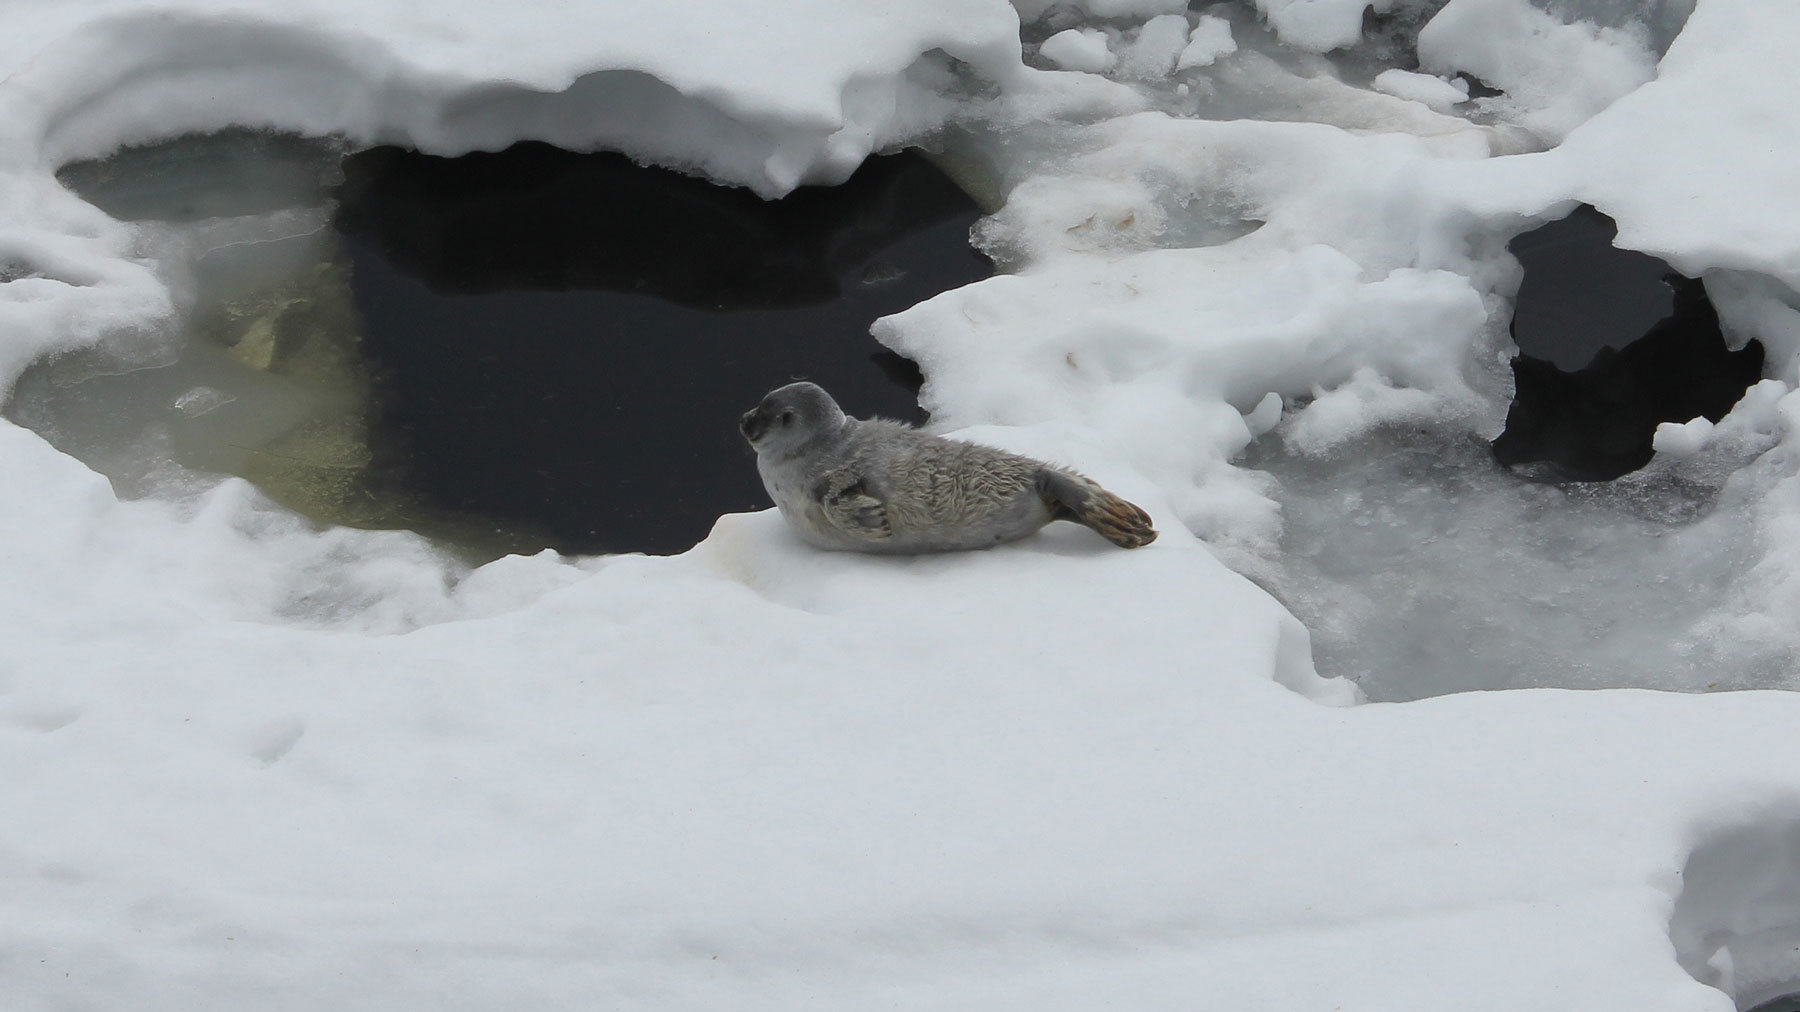 A ringed seal, in its natural habitat. Photo: Ismo Marttinen/WWF.